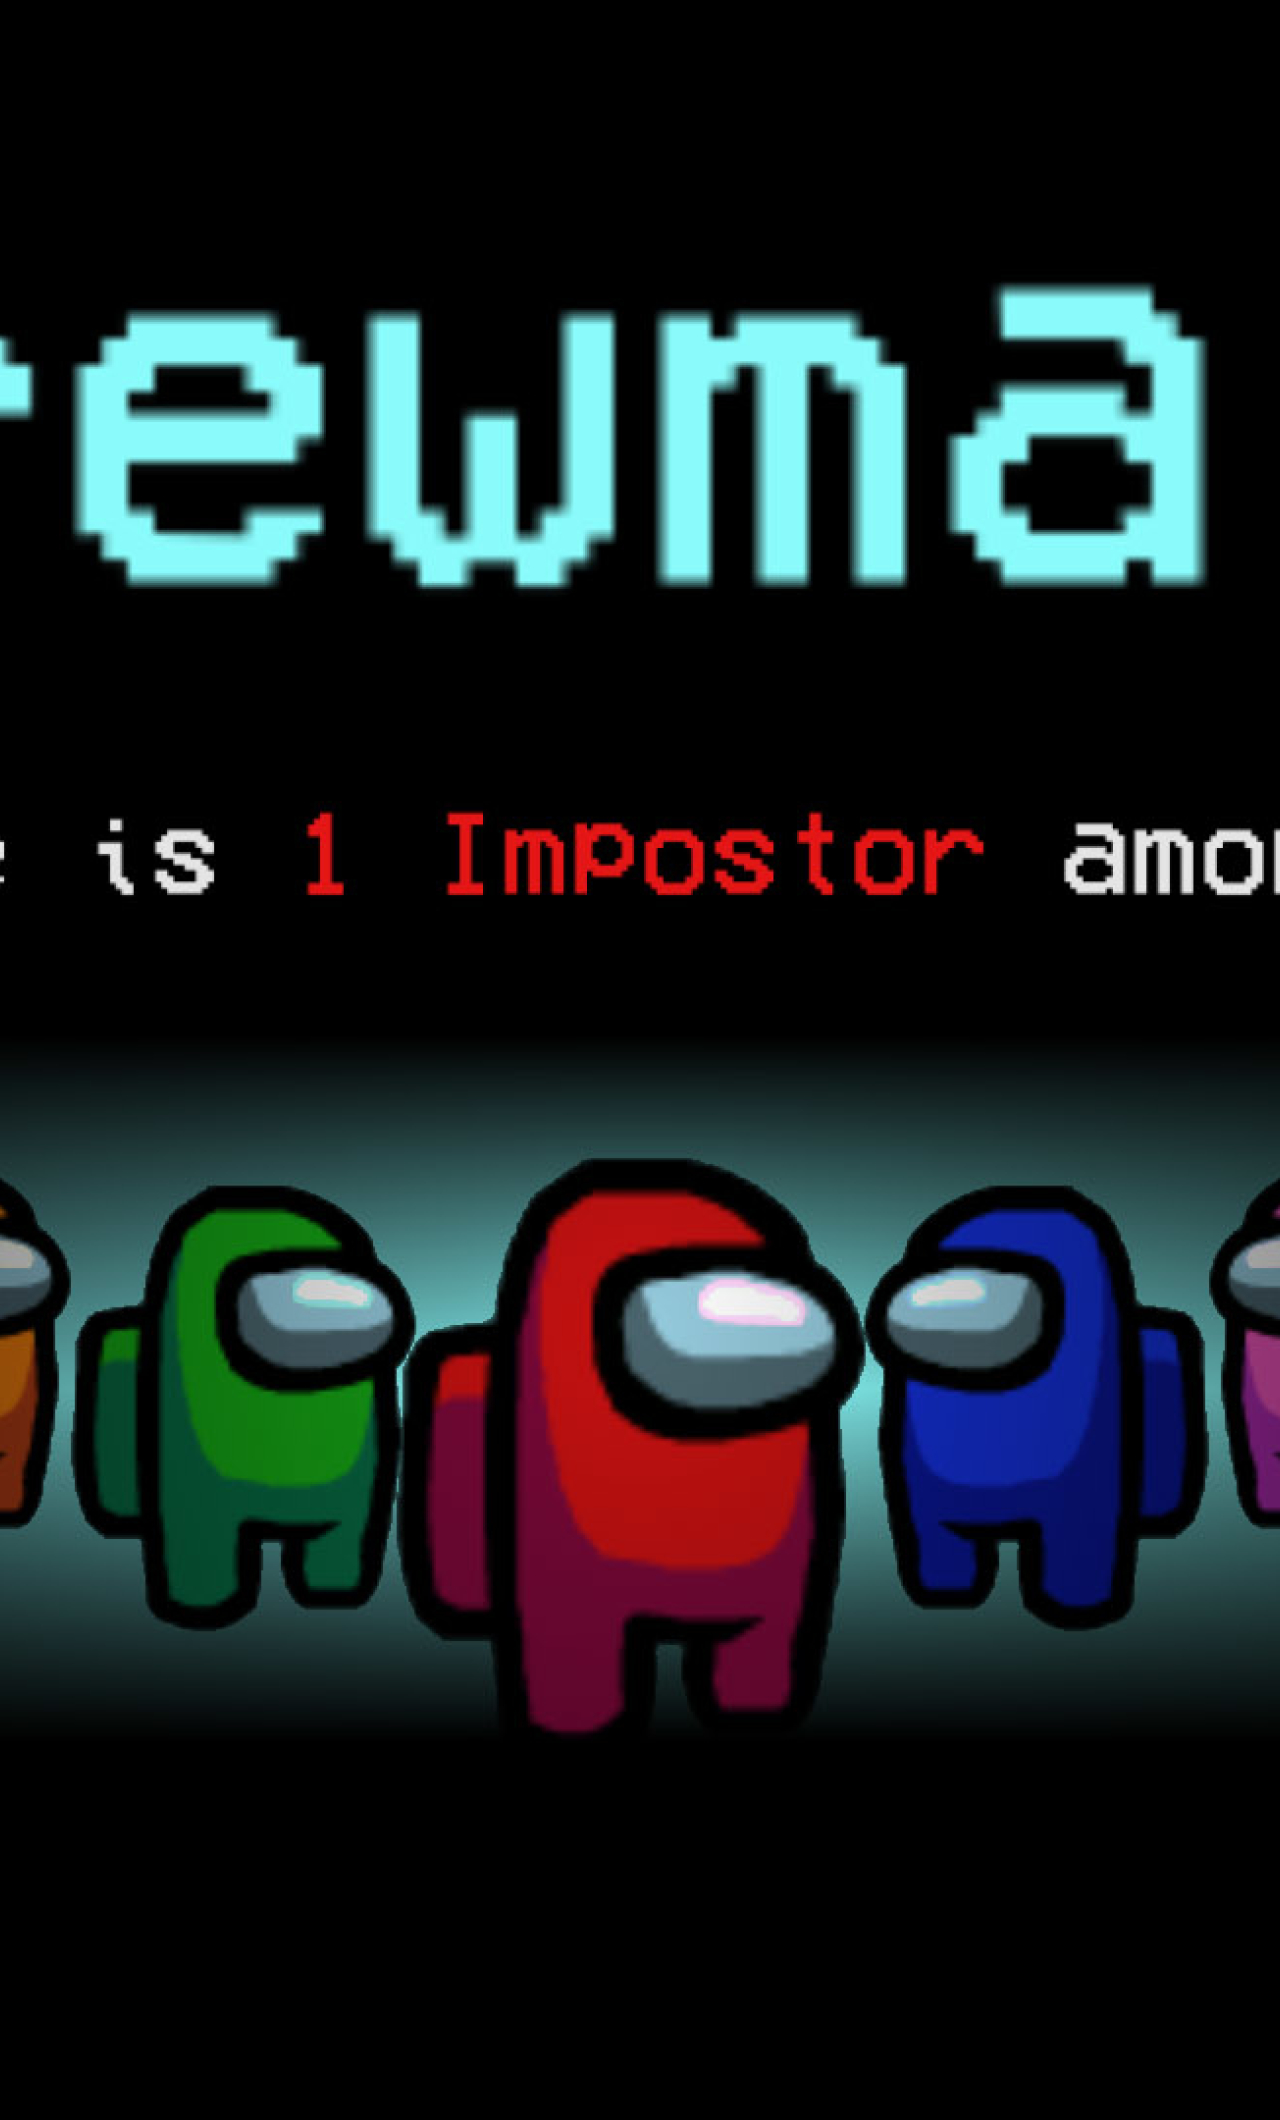 1280x2120 There is 1 Imposter Crewmate Among Us iPhone 6 ...